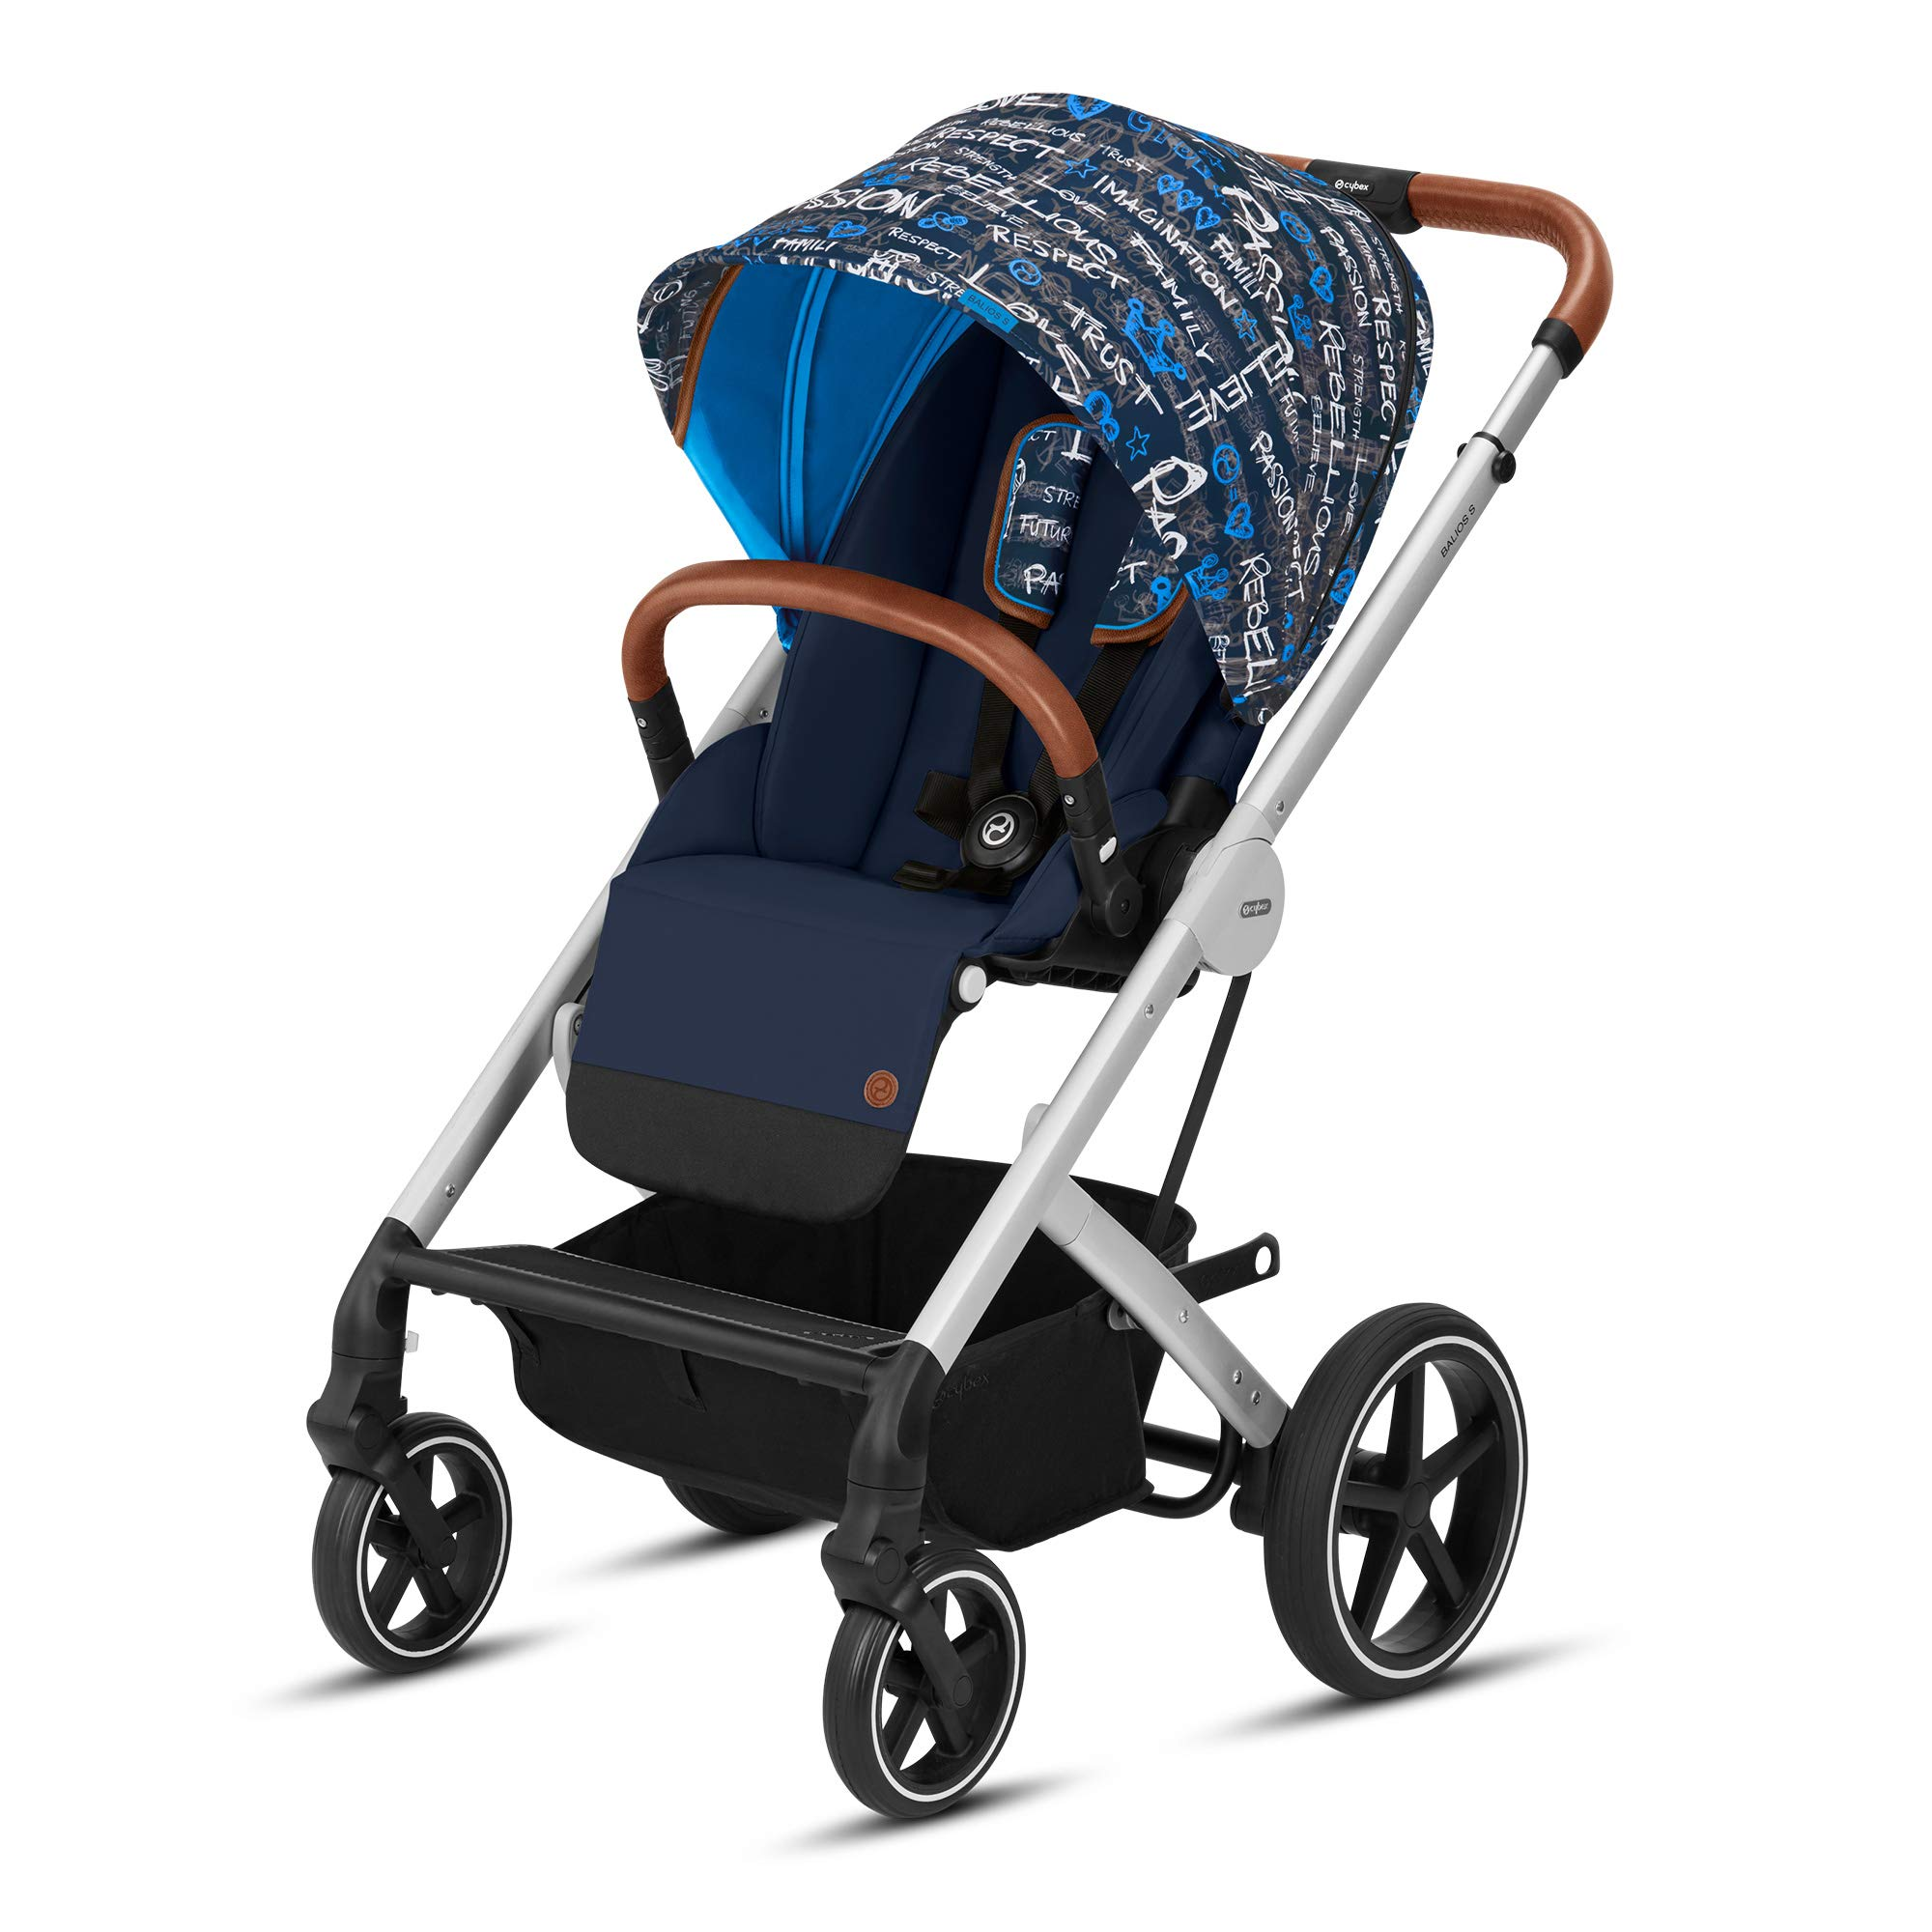 Cybex Balios S Convertible Baby Stroller with Sun Canopy, Trust Blue